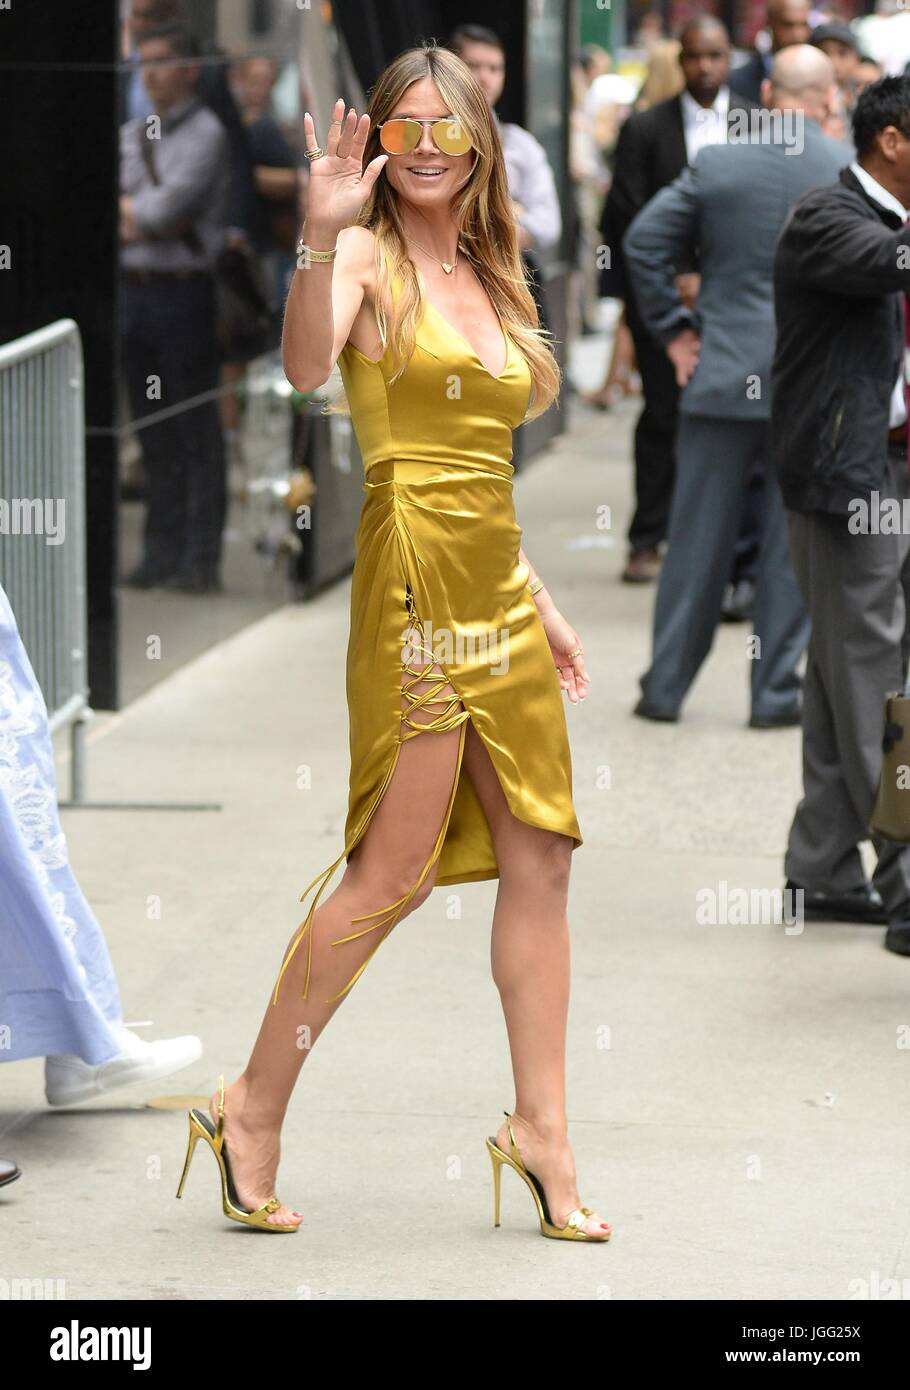 new york ny usa 6th july 2017 heidi klum out and about for stock photo royalty free image. Black Bedroom Furniture Sets. Home Design Ideas